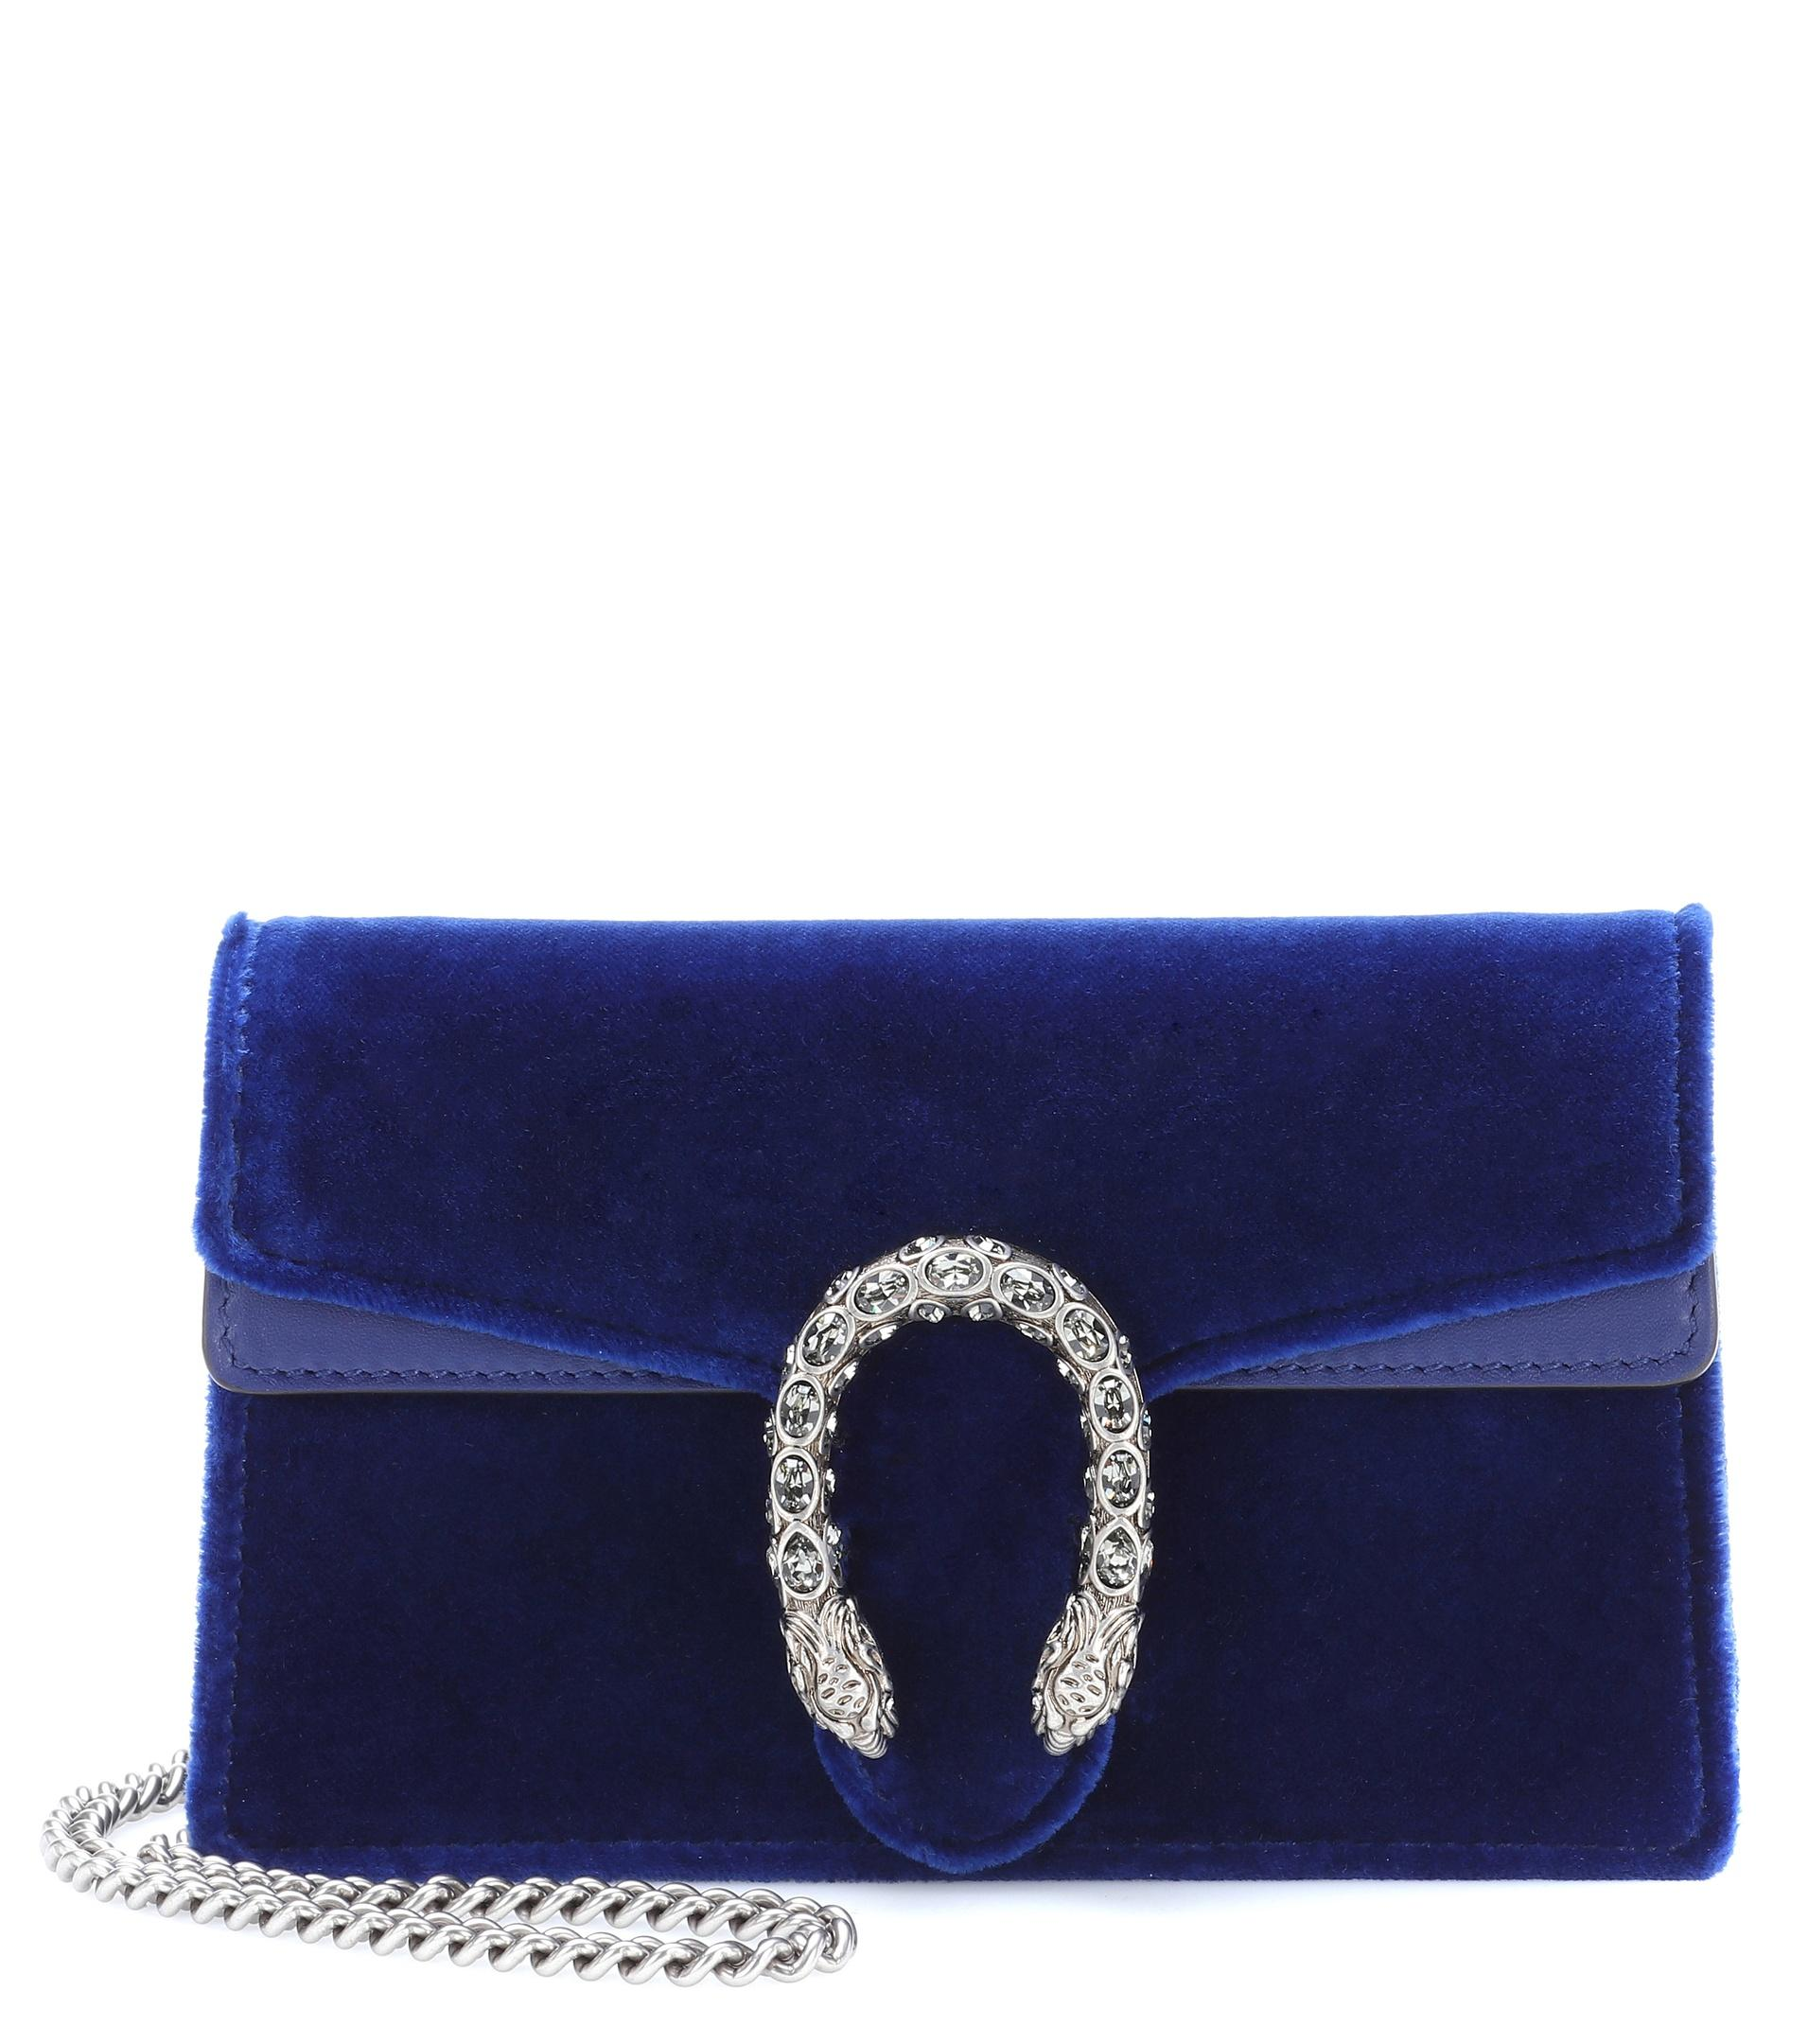 0a6f927fe90b Gucci Blue Velvet Bag Uk | Stanford Center for Opportunity Policy in ...